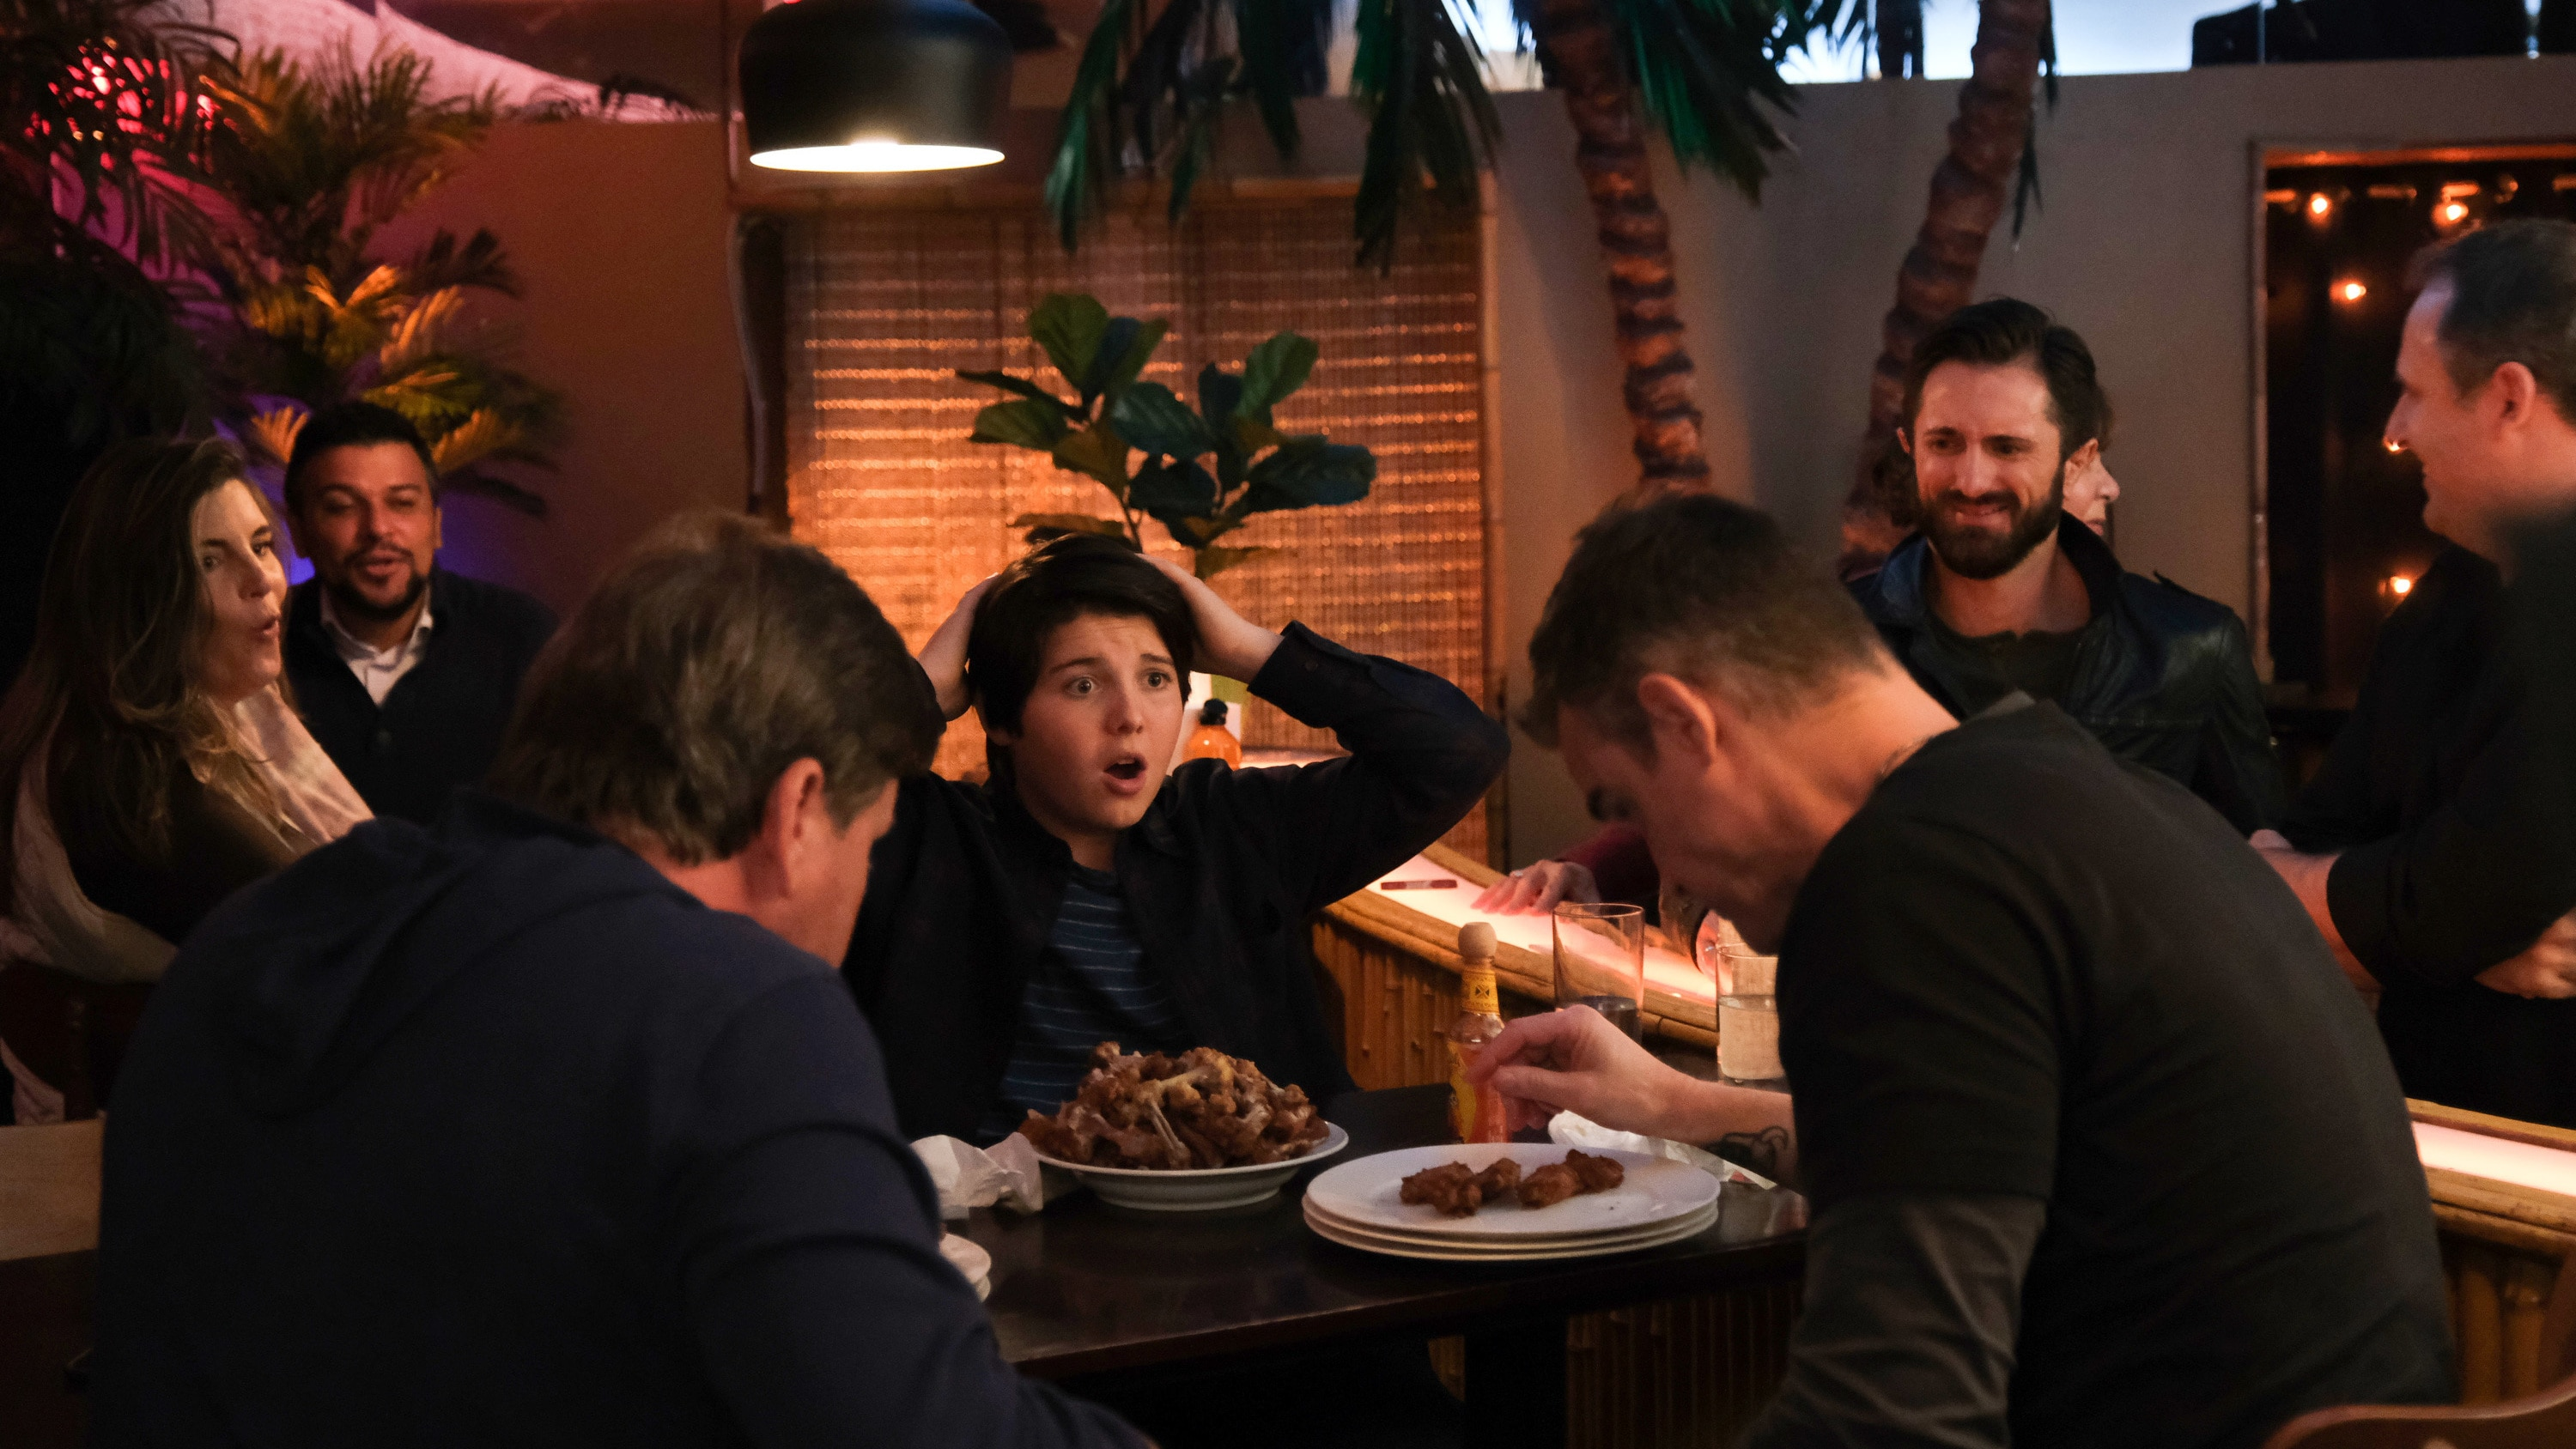 """THE MIGHTY DUCKS: GAME CHANGERS - """"Cherry Picker"""" - Evan's rocker dad unexpectedly shows up, complicating things for Evan, Alex, and even Bombay.  (Disney/Liane Hentscher) BRADY NOON"""